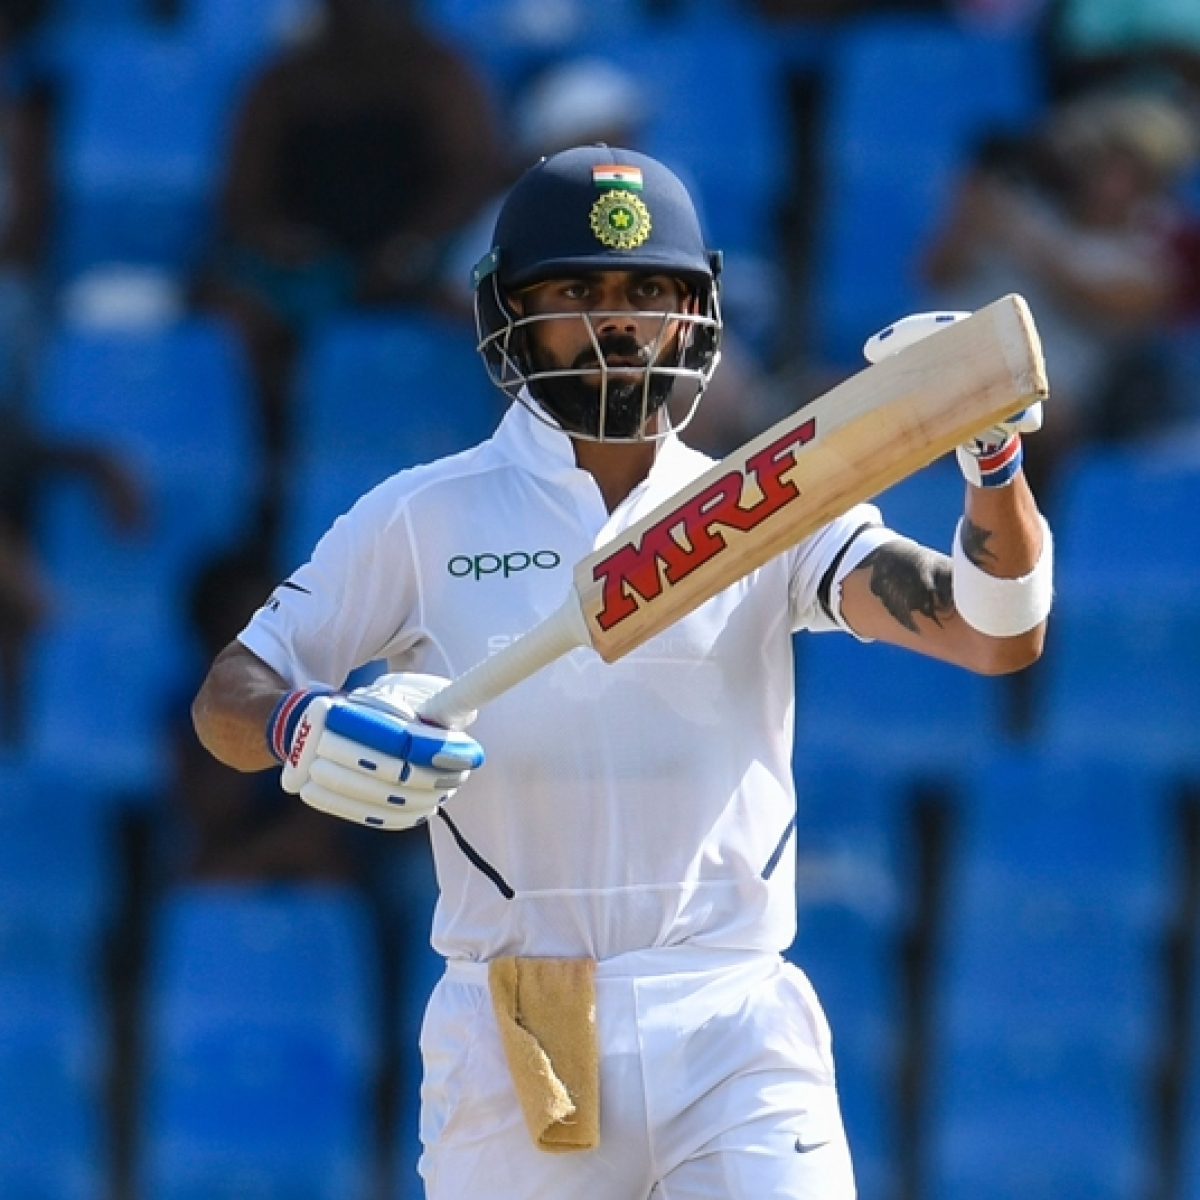 There will be opinions but we do keep best interests of team in mind: Virat Kohli